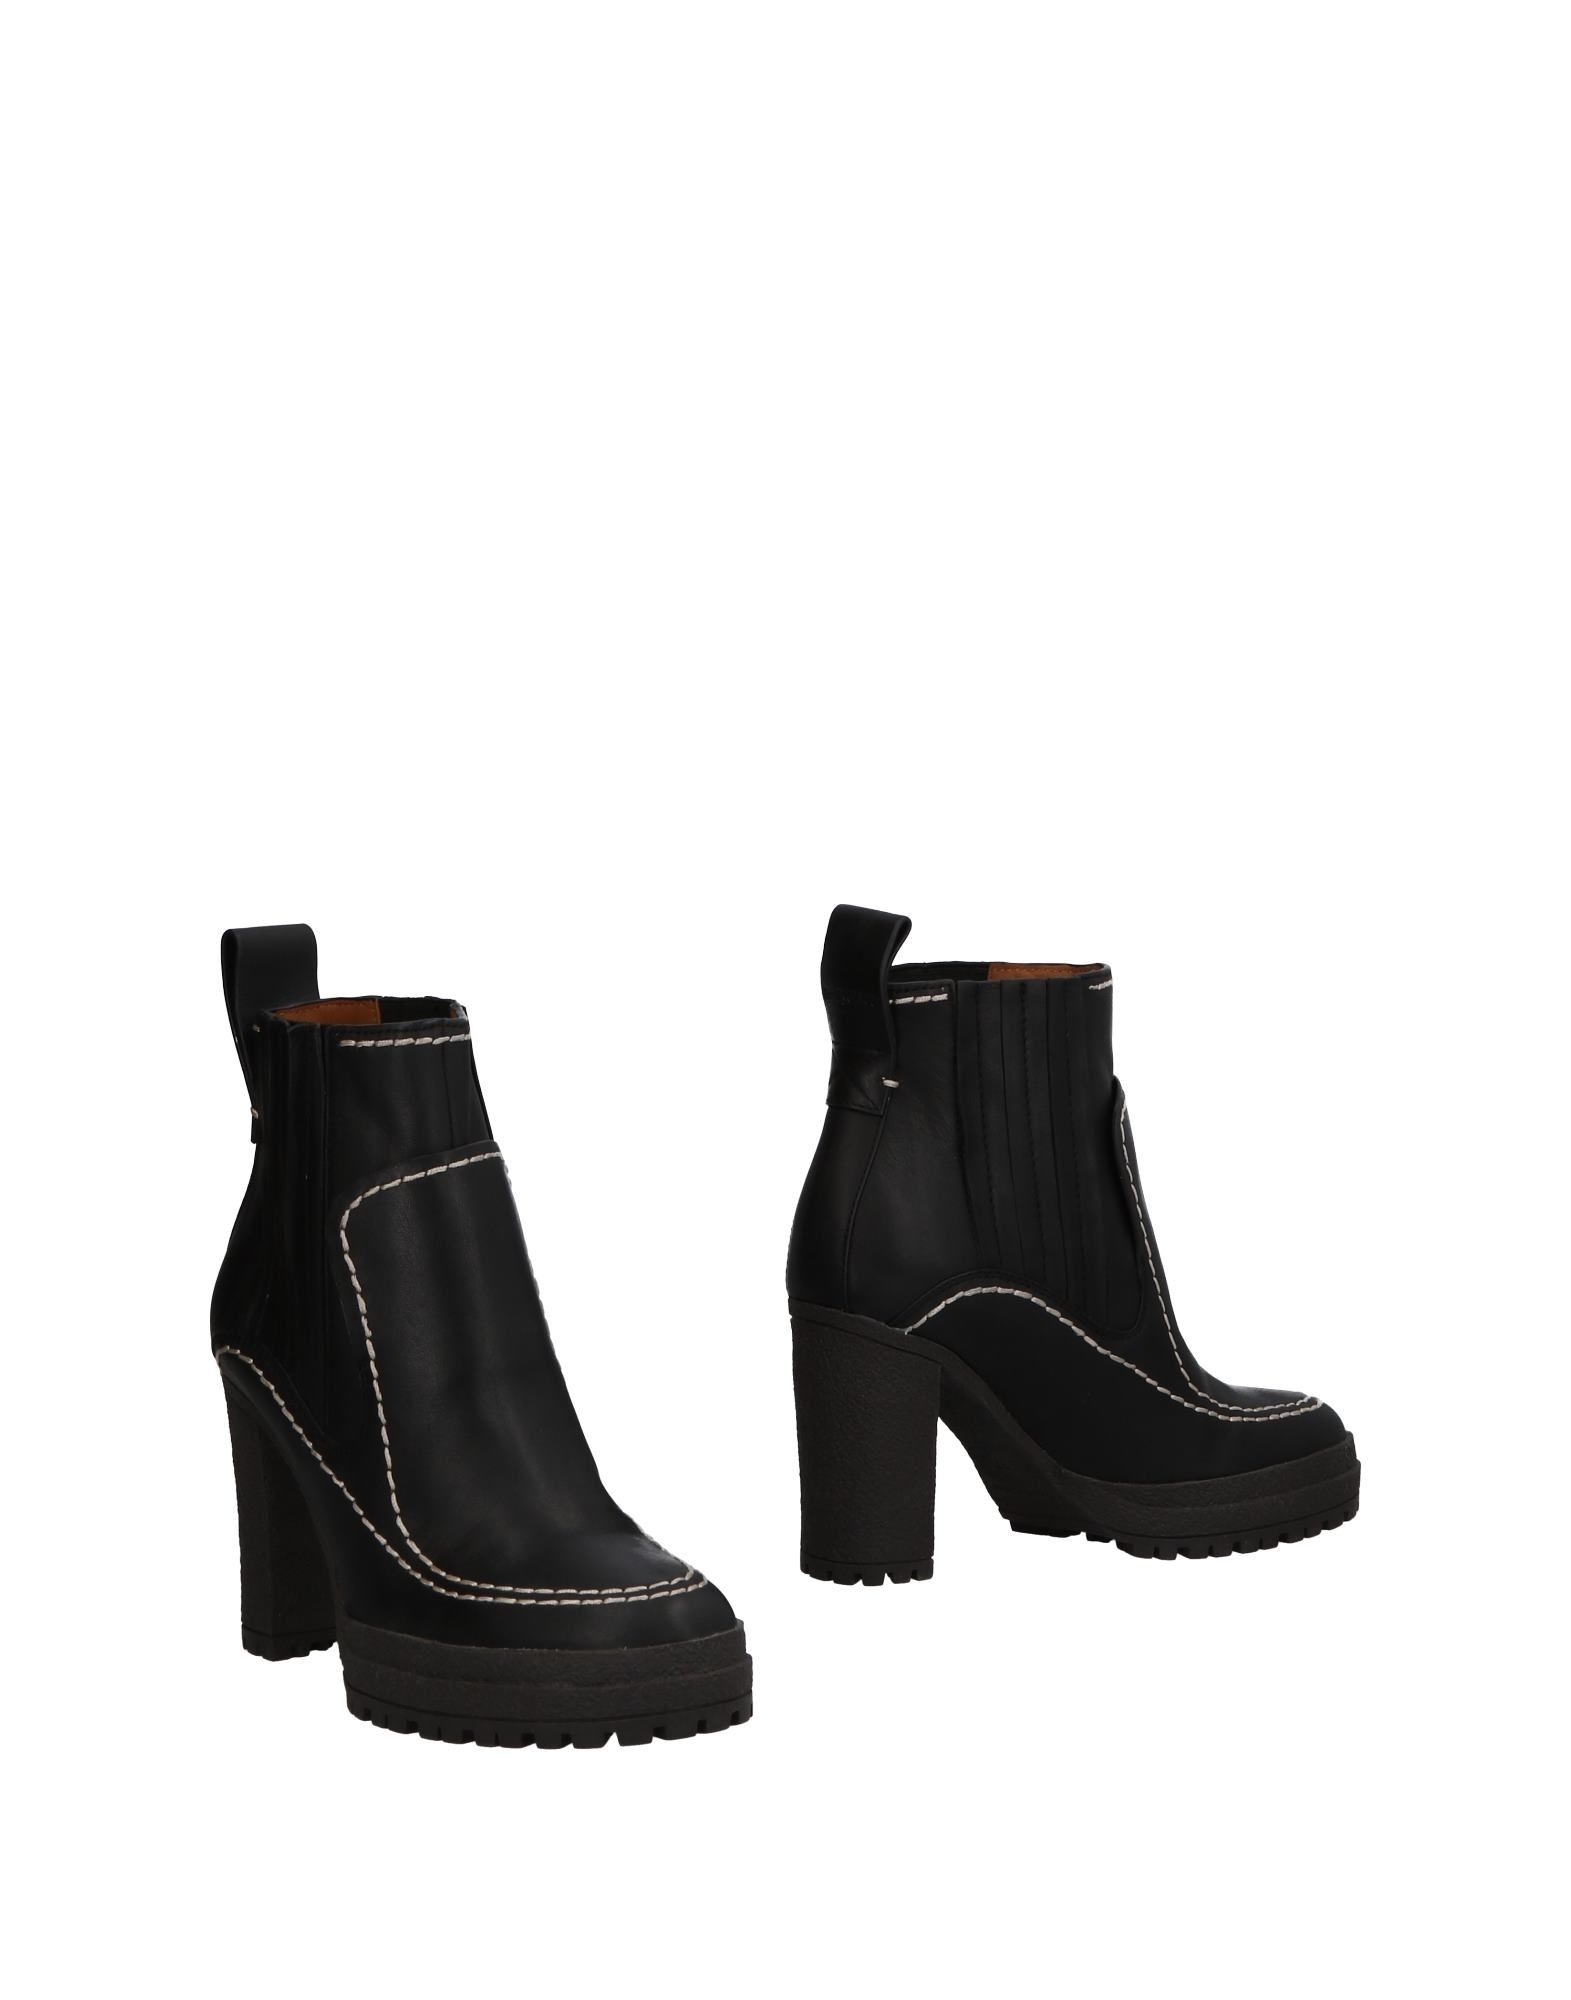 See By Neue Chloé Stiefelette Damen  11496860TI Neue By Schuhe e5c23a